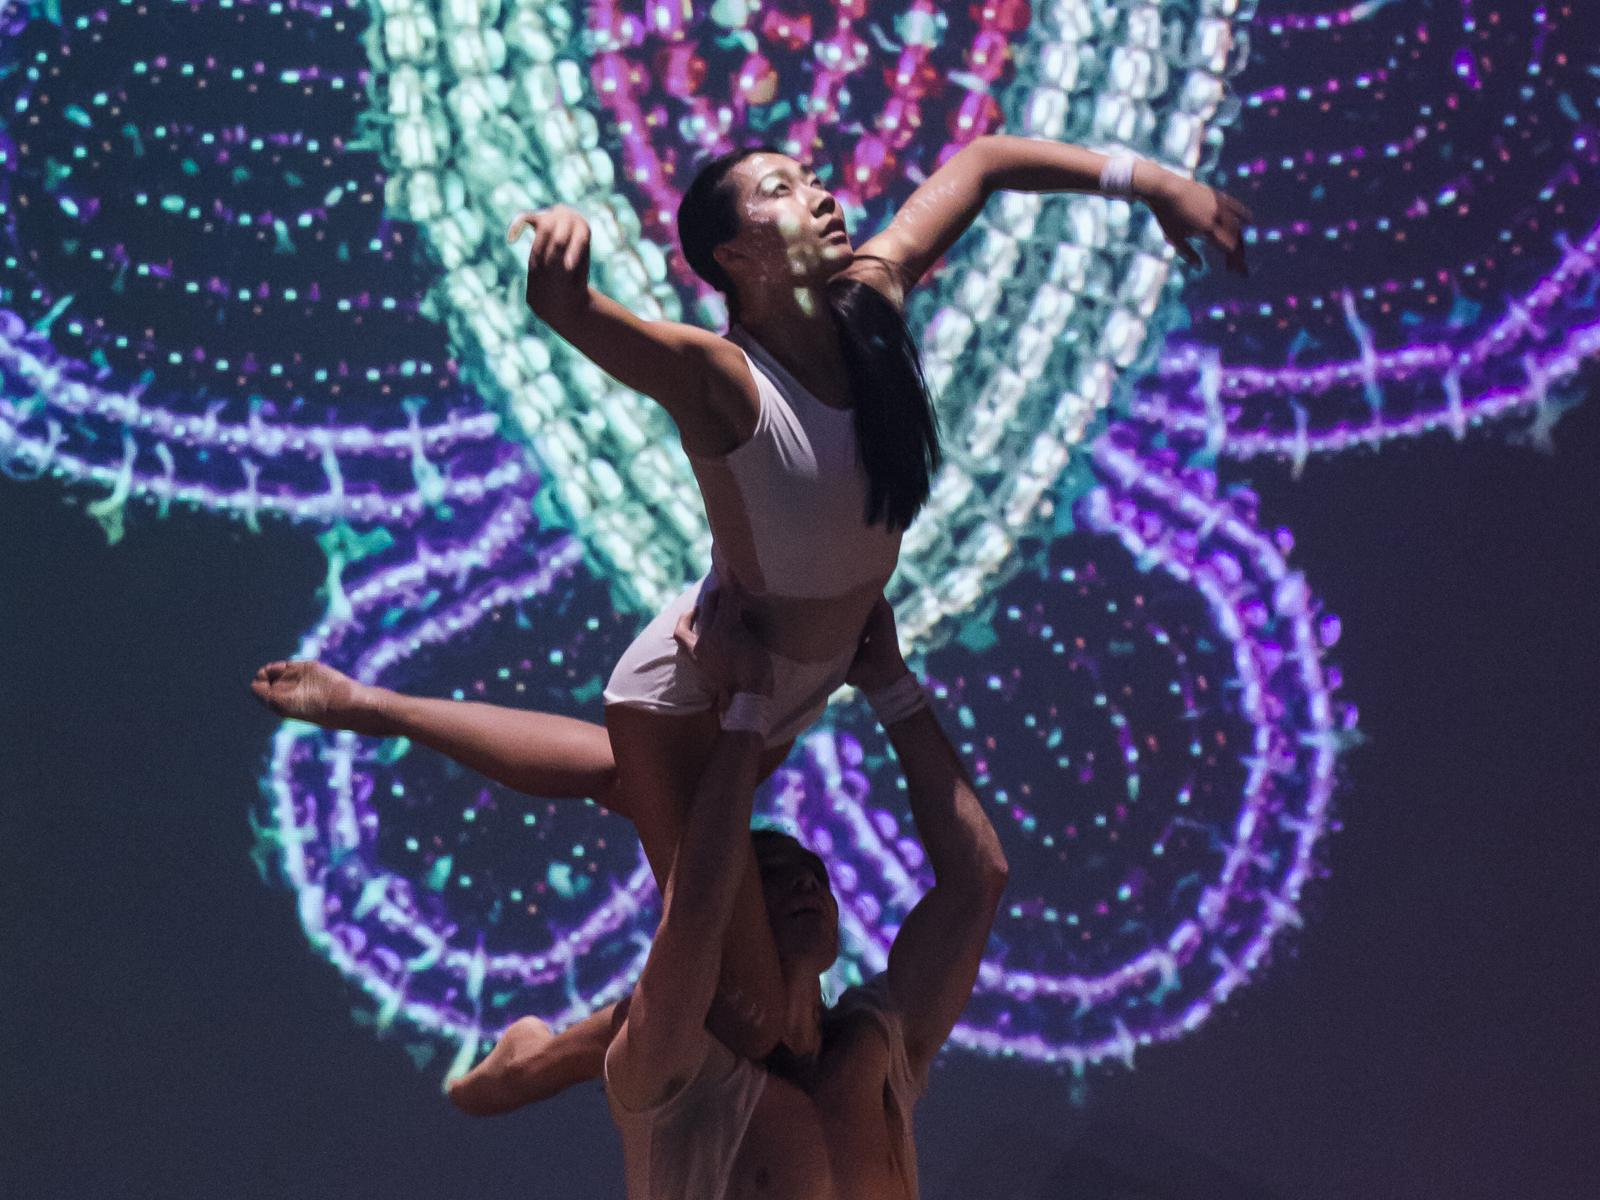 A dancer soars with a lighted backdrop in a Red Sky Performance piece